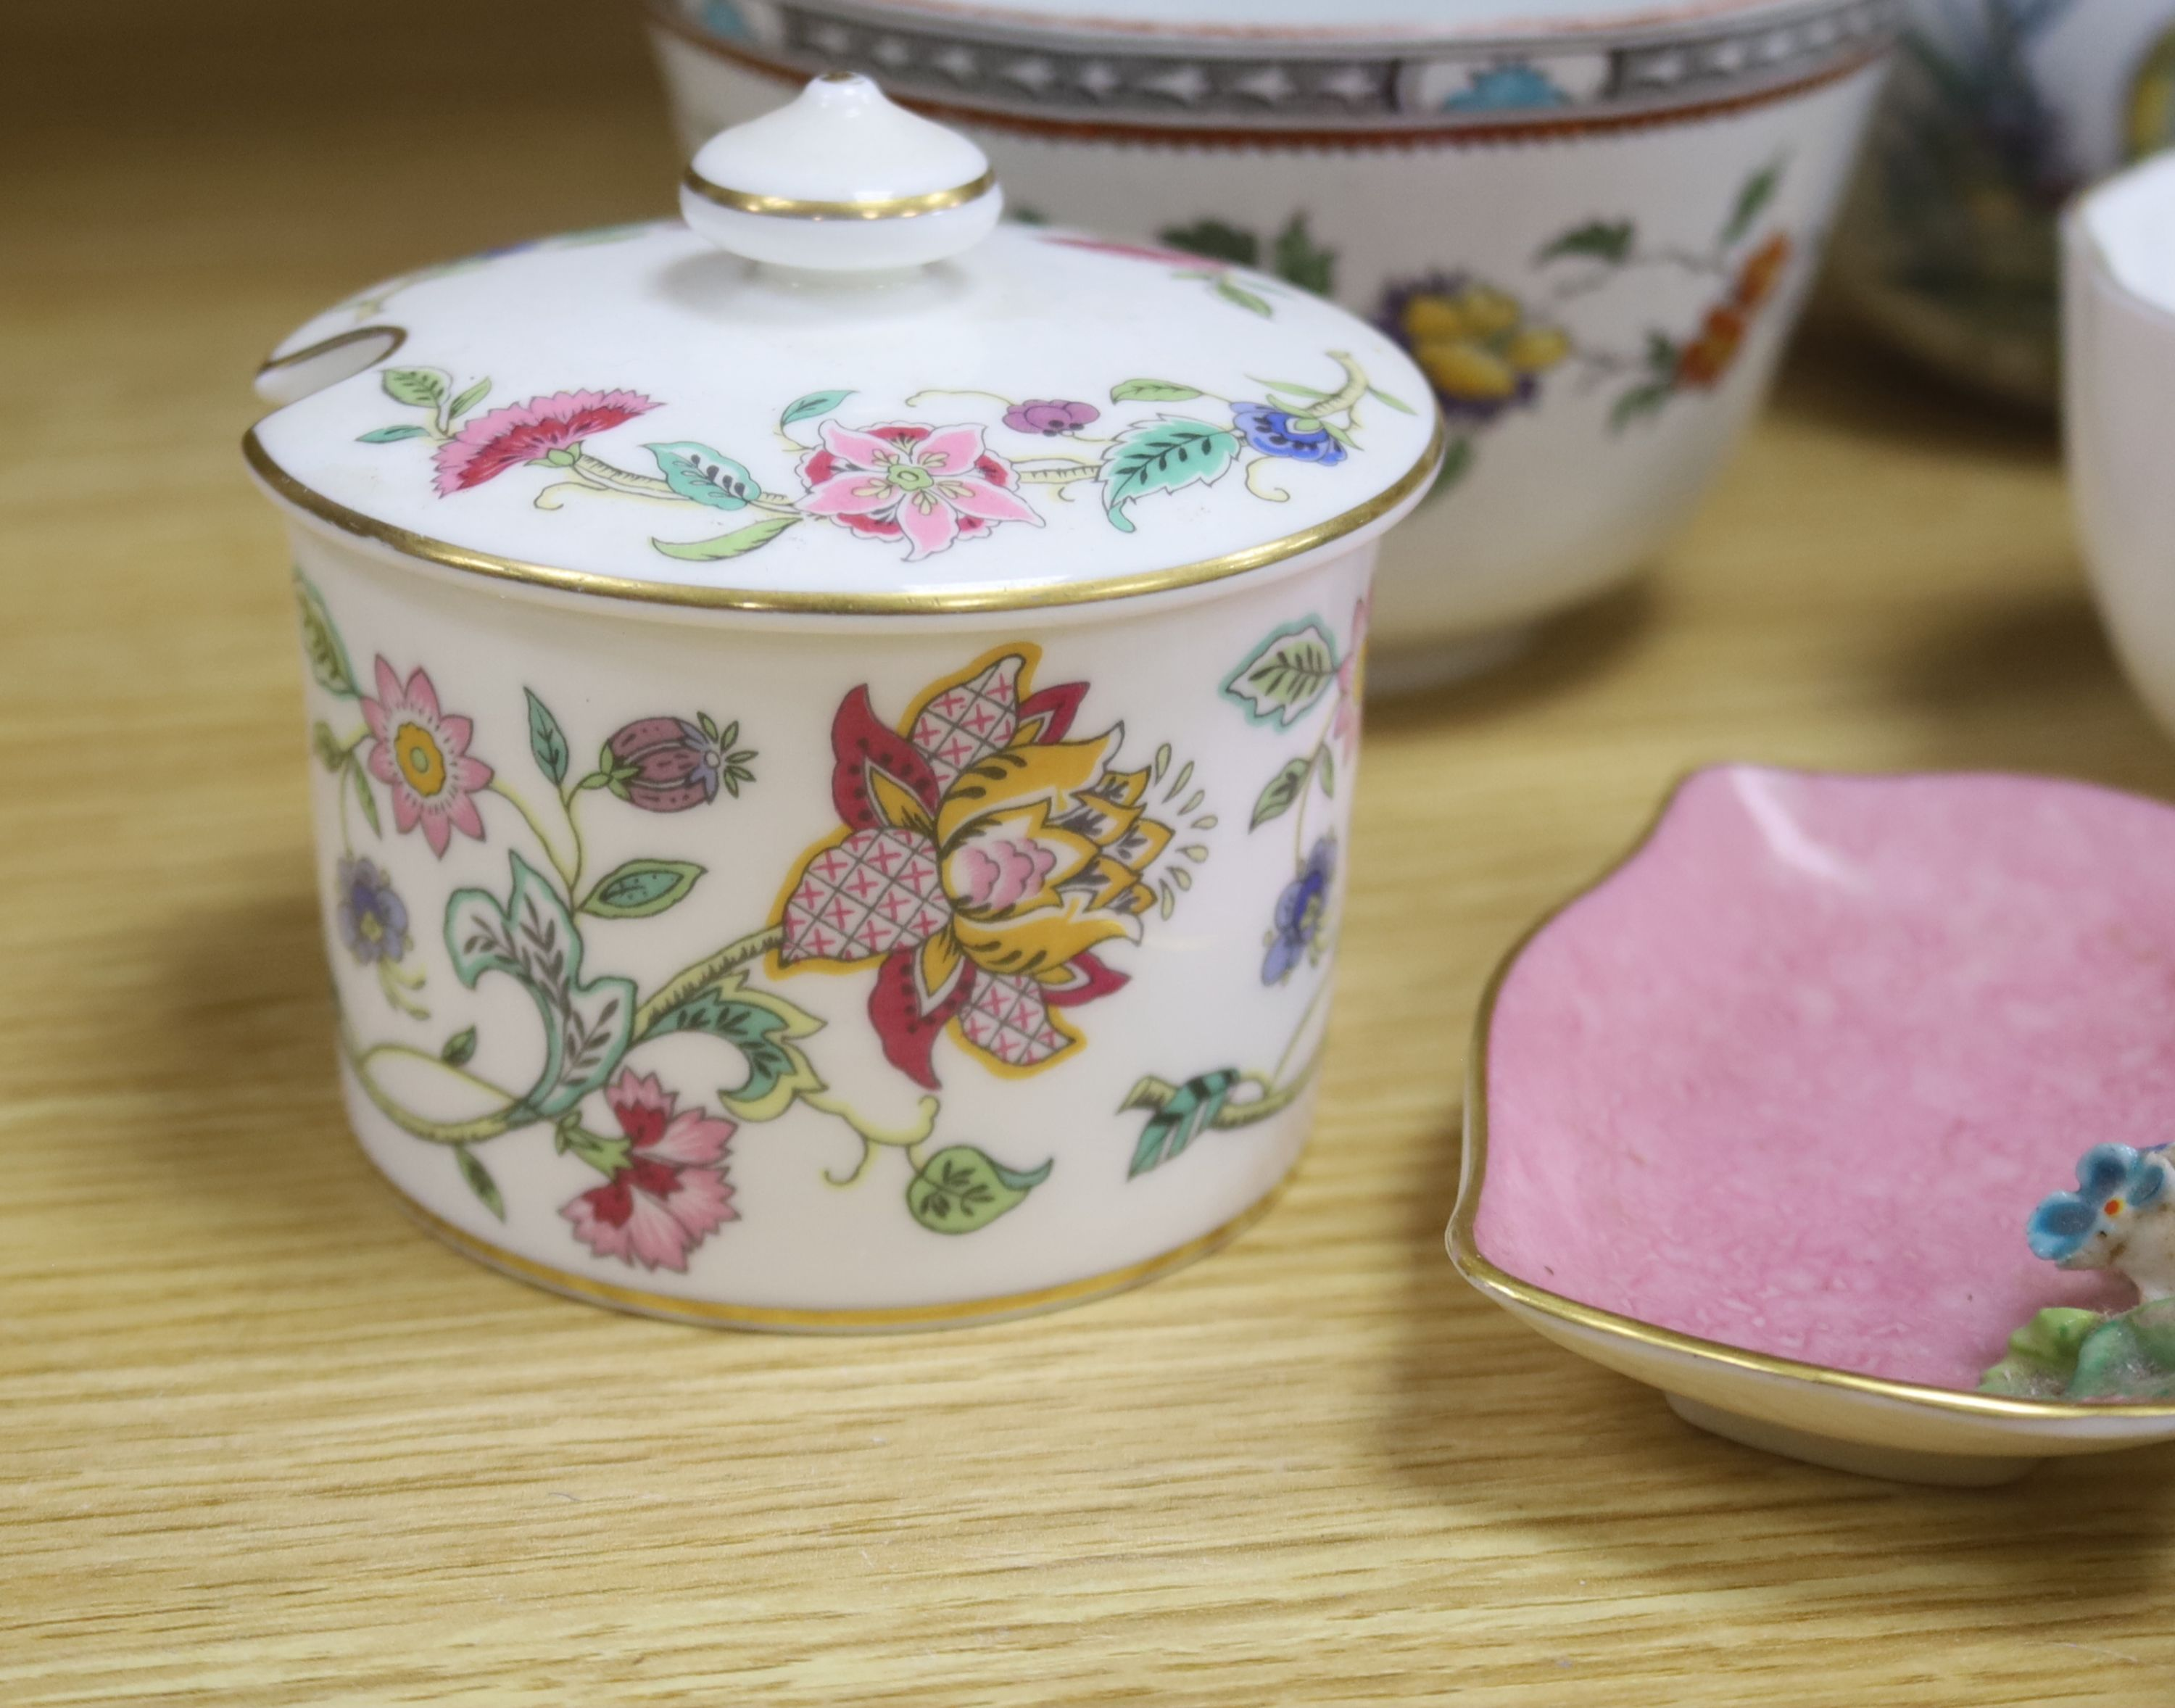 A small collection of English and Continental ceramics, including two 18th century tea bowlswith - Bild 3 aus 8